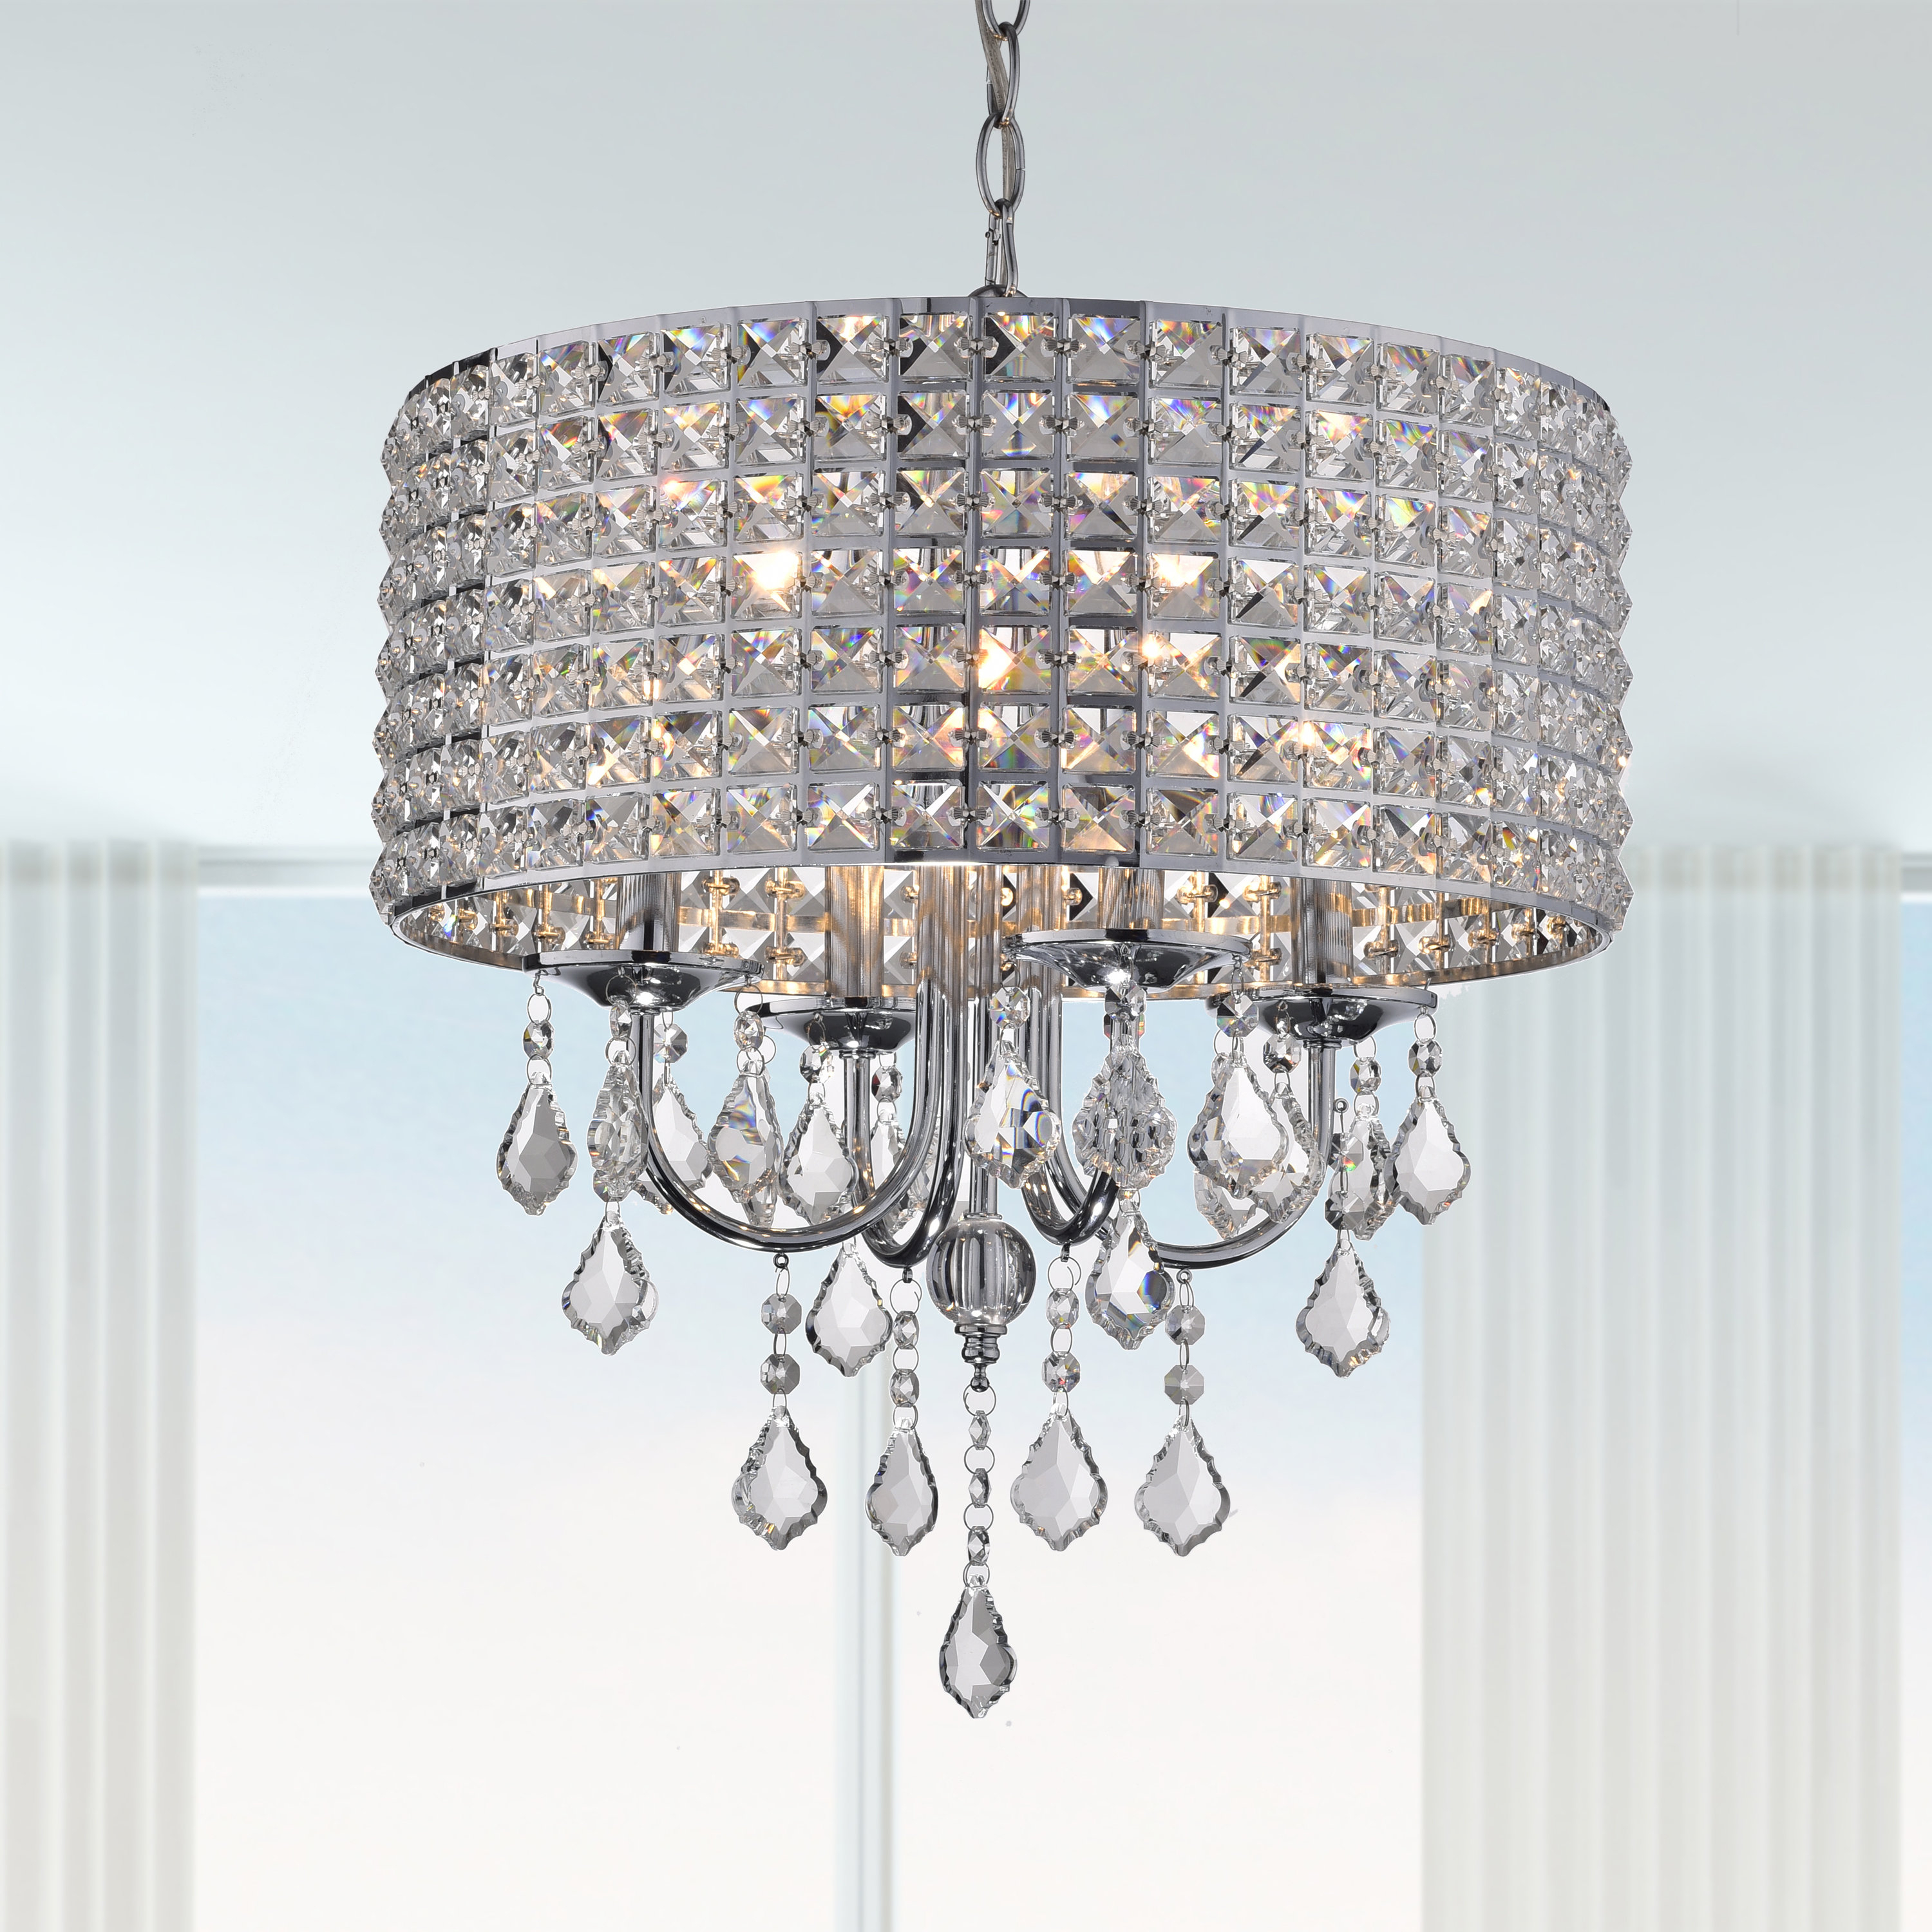 Albano 4 Light Crystal Chandelier Within Albano 4 Light Crystal Chandeliers (Image 8 of 30)